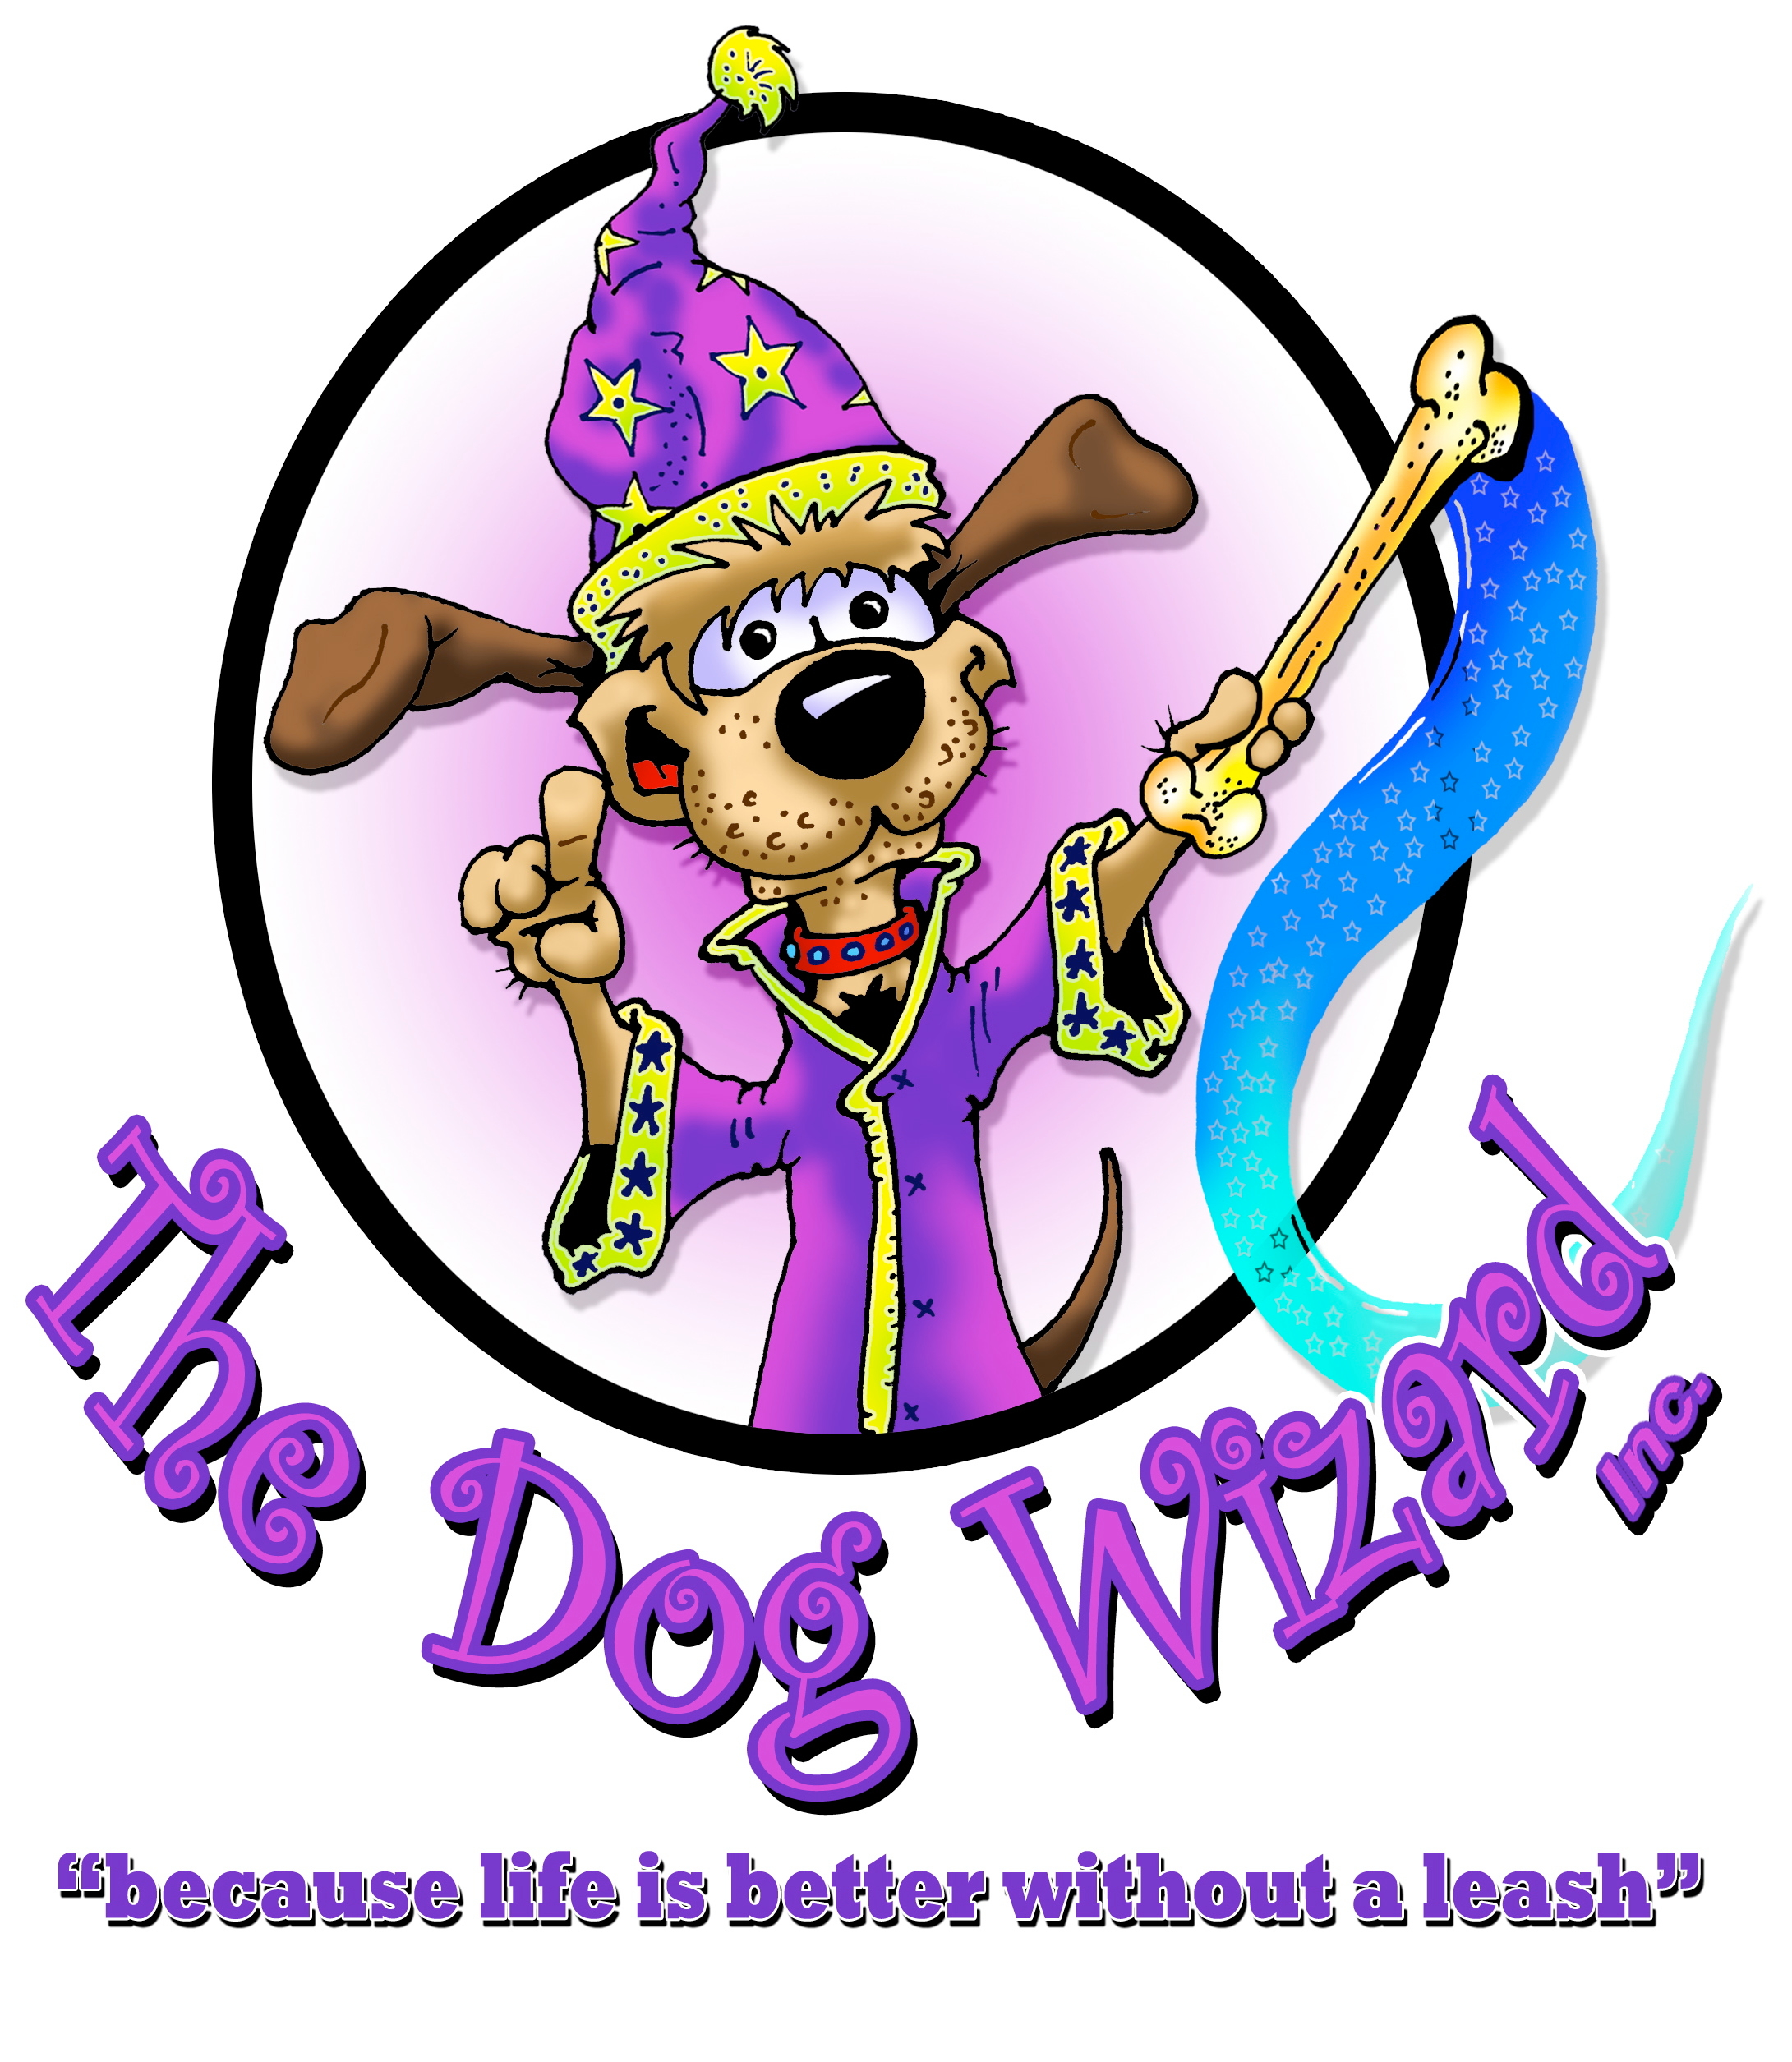 The Dog Wizard image 5